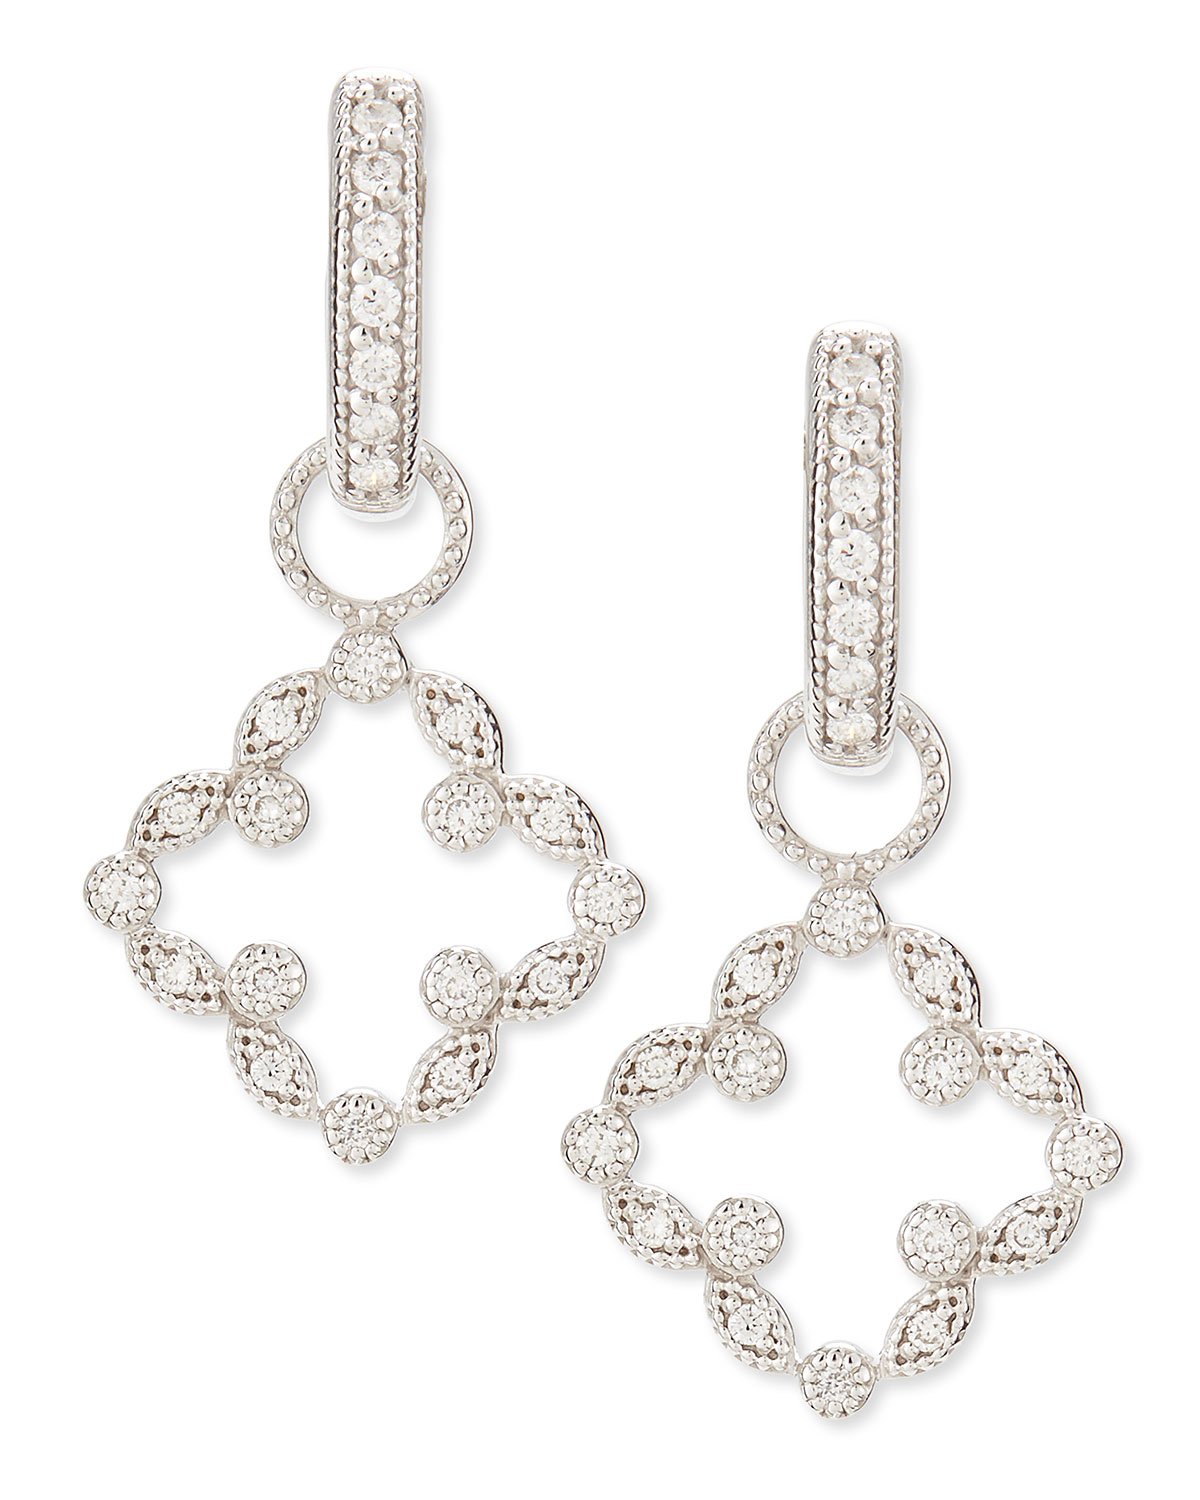 Judefrances Jewelry Open Marquise Pave Diamond Clover